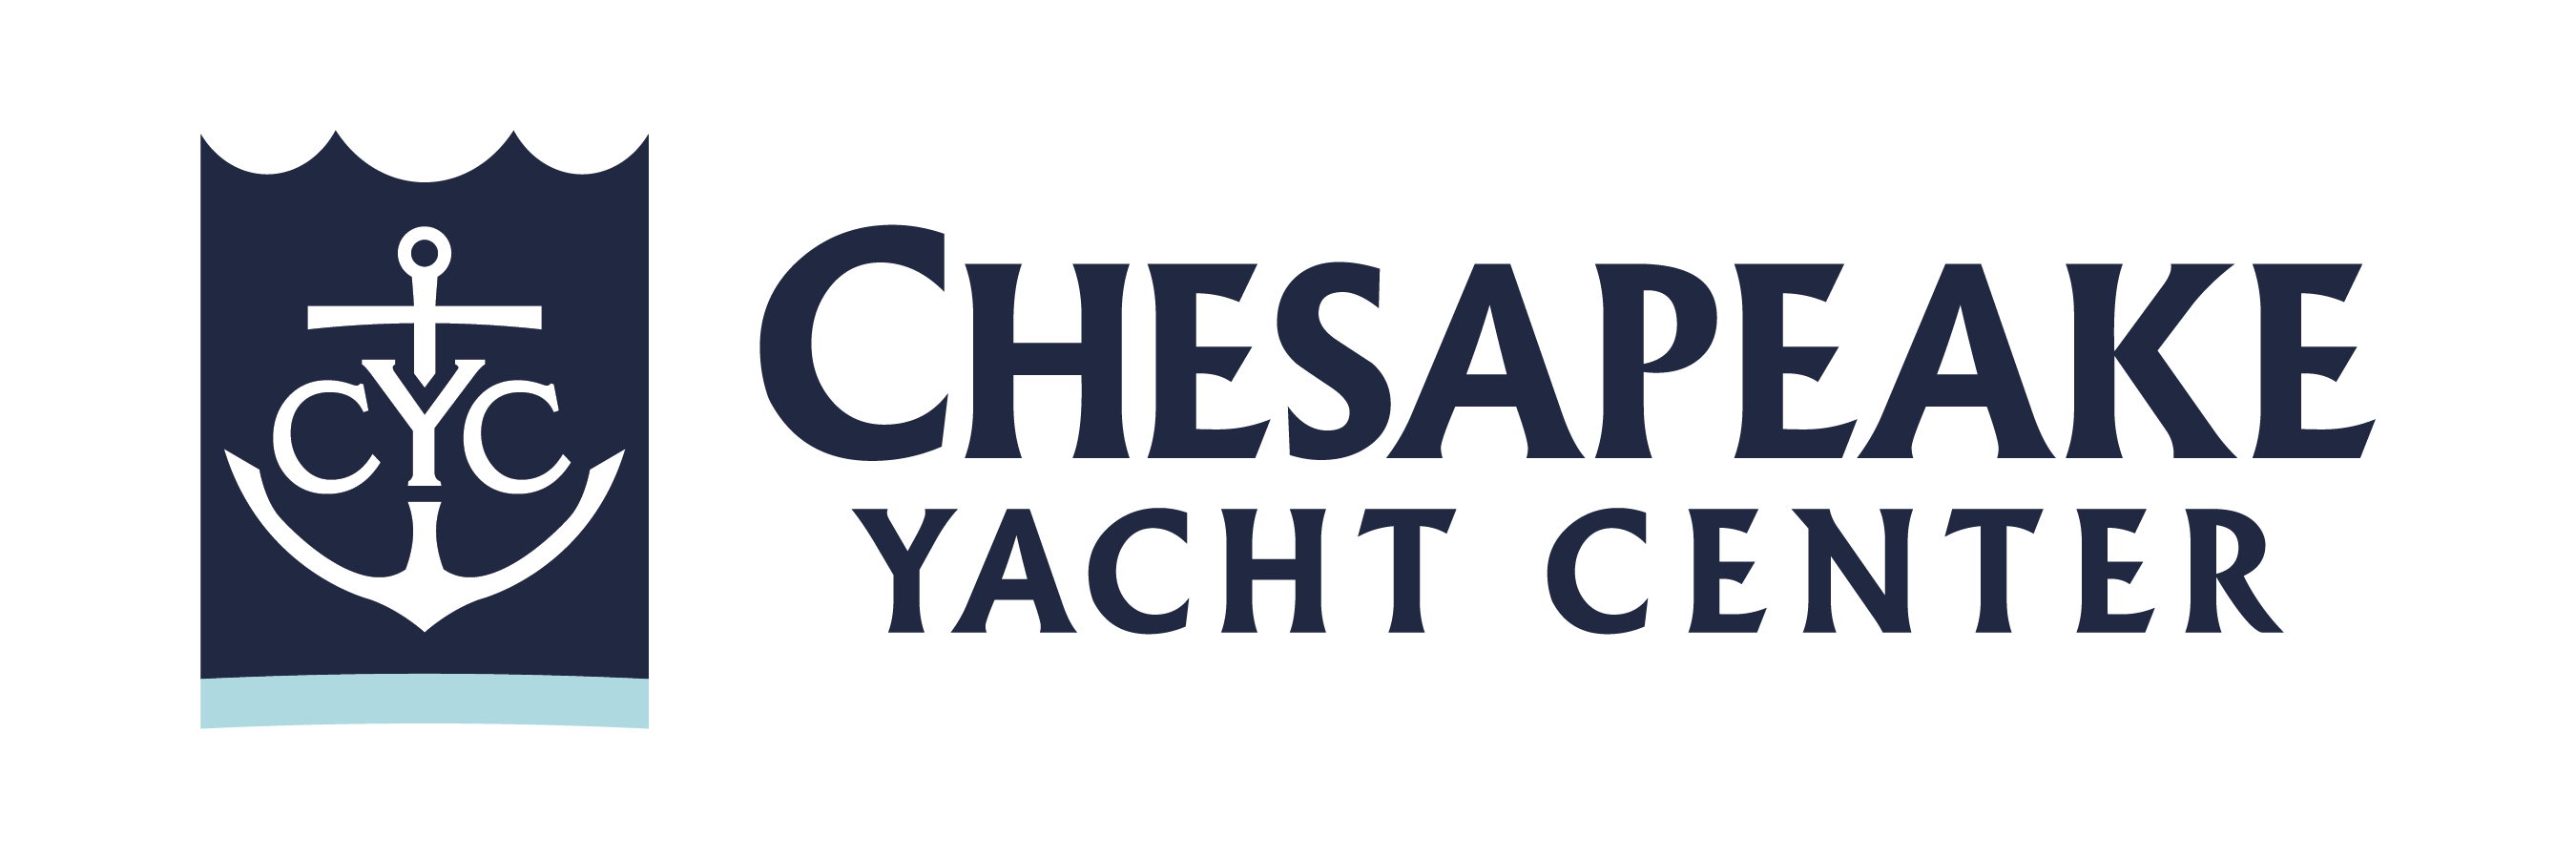 Chesapeake Yacht Center